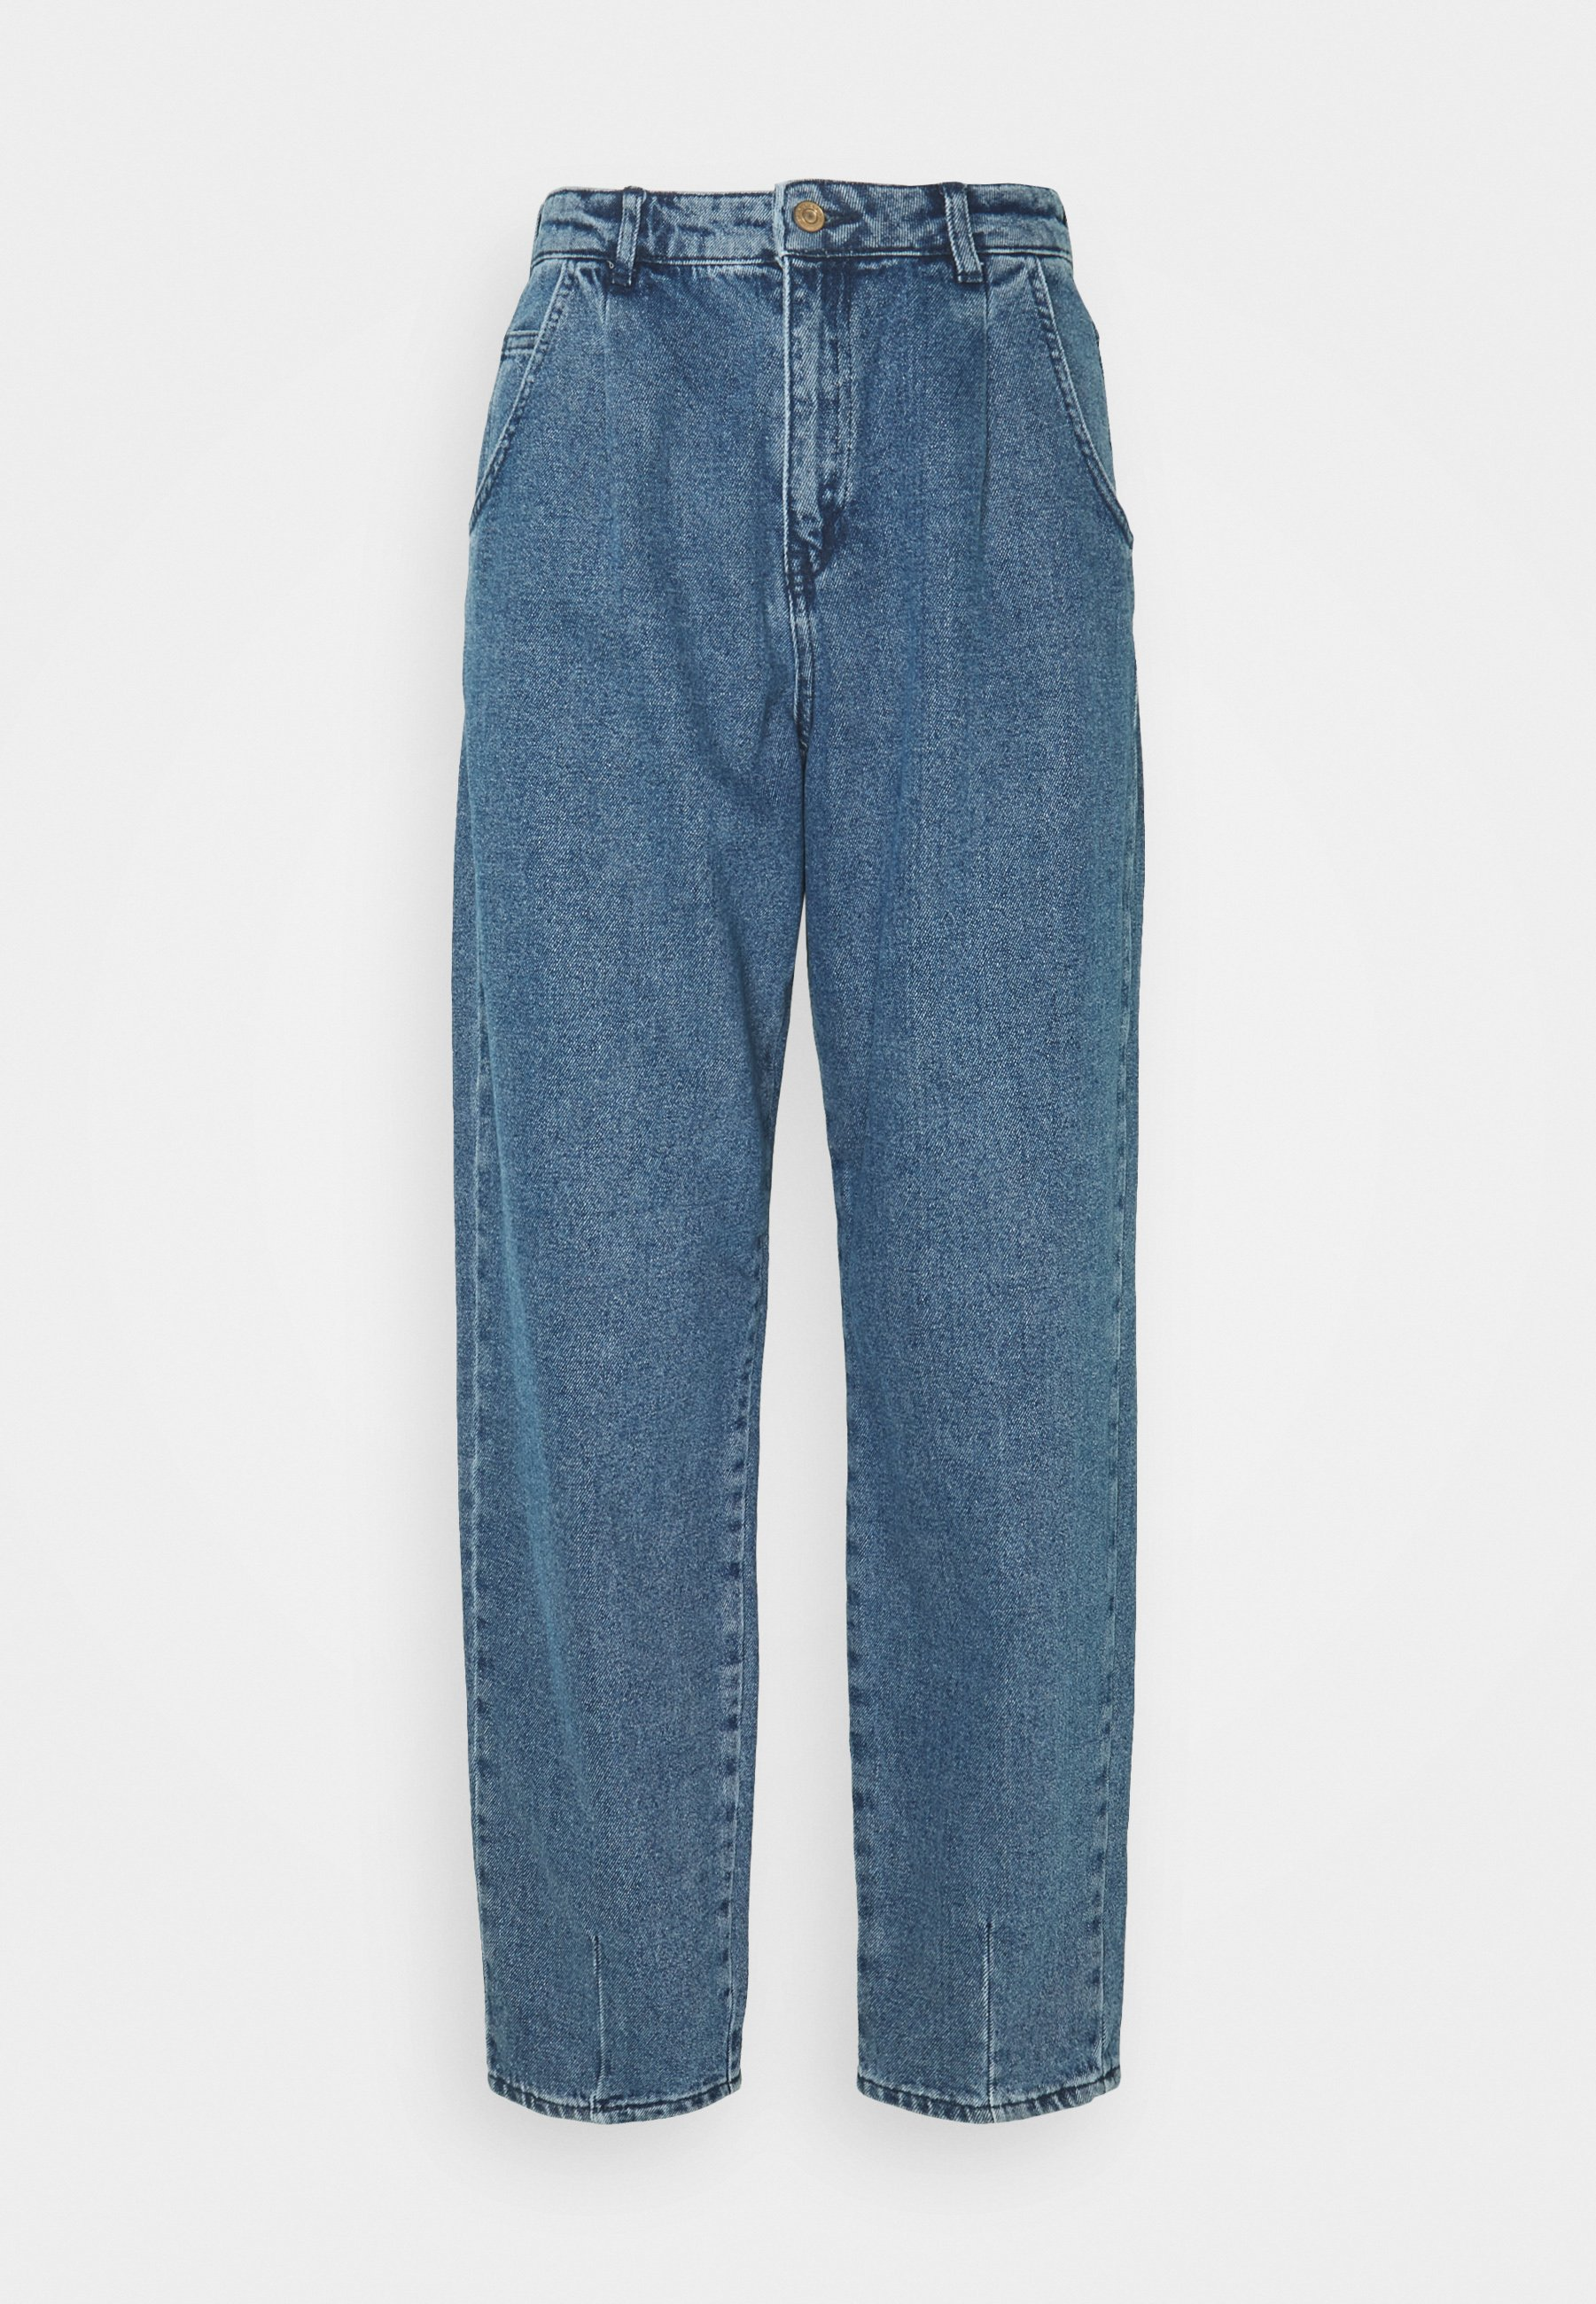 Relaxed fit | Dame | Nye relaxed fit jeans på nett hos Zalando